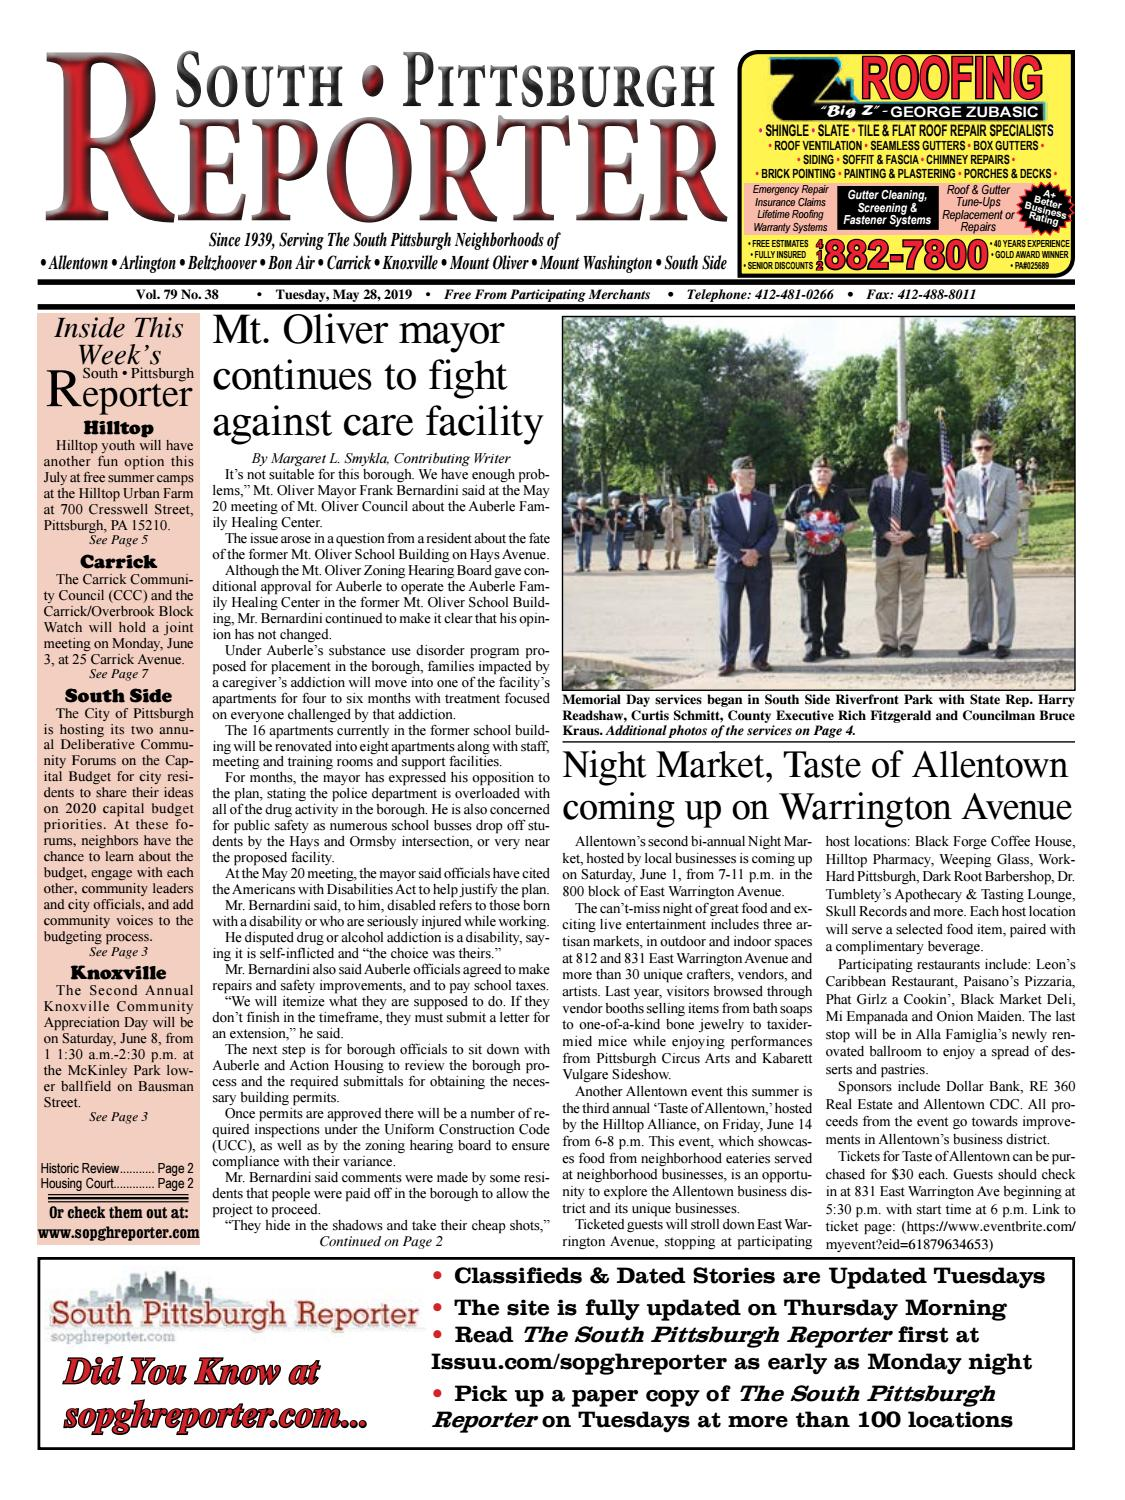 SPR 05-28-19 by South Pittsburgh Reporter - issuu